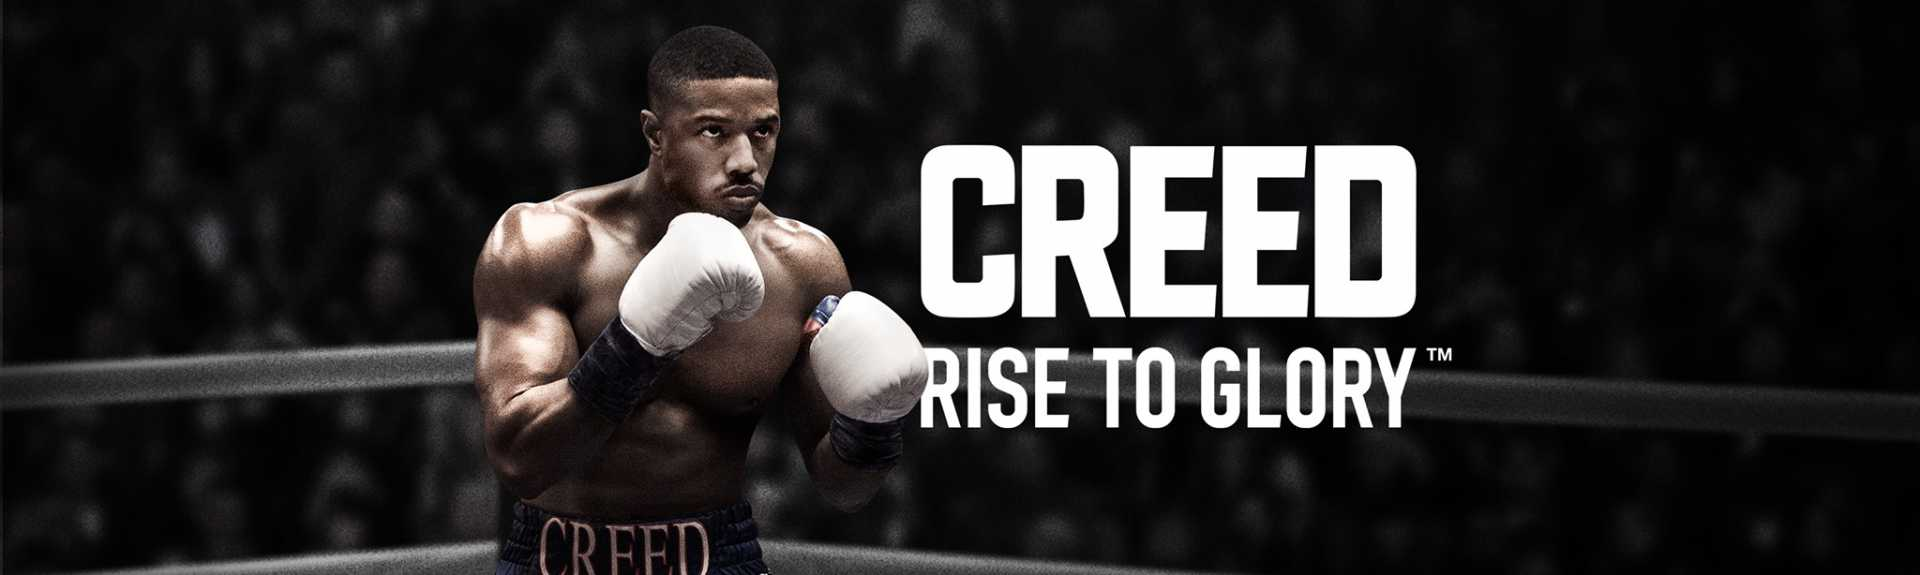 Creed: Rise to Glory - Demo